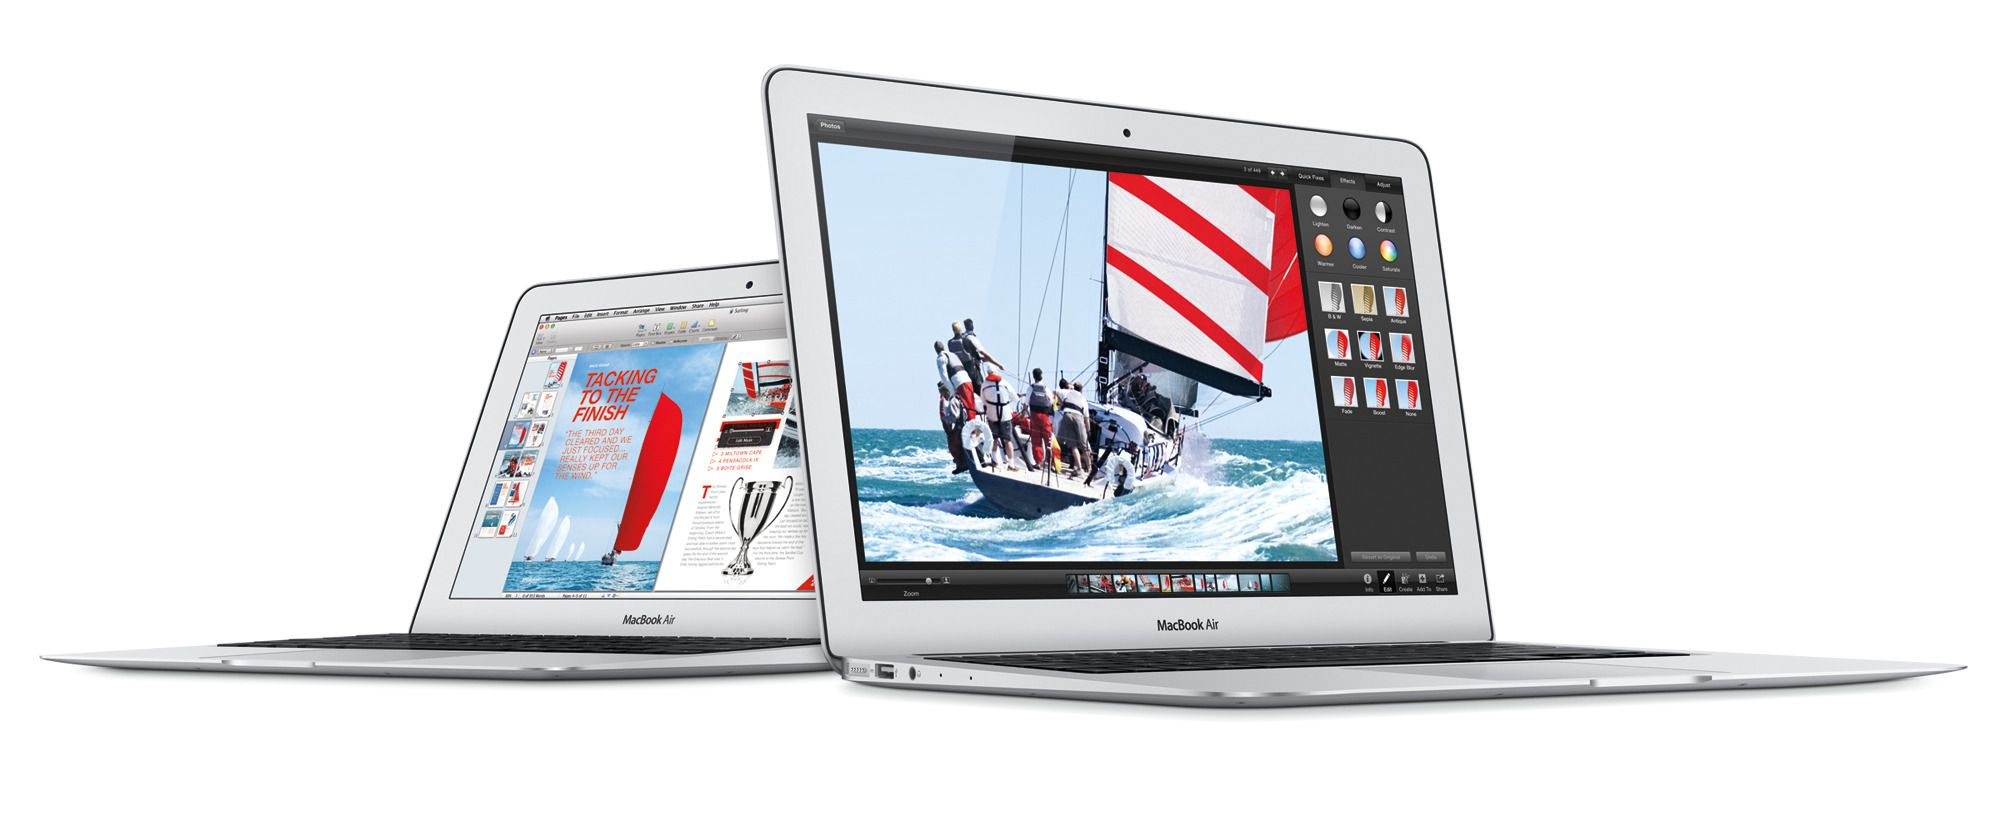 MacBook Air kommer trolig i Retina-utgave.Foto: Apple